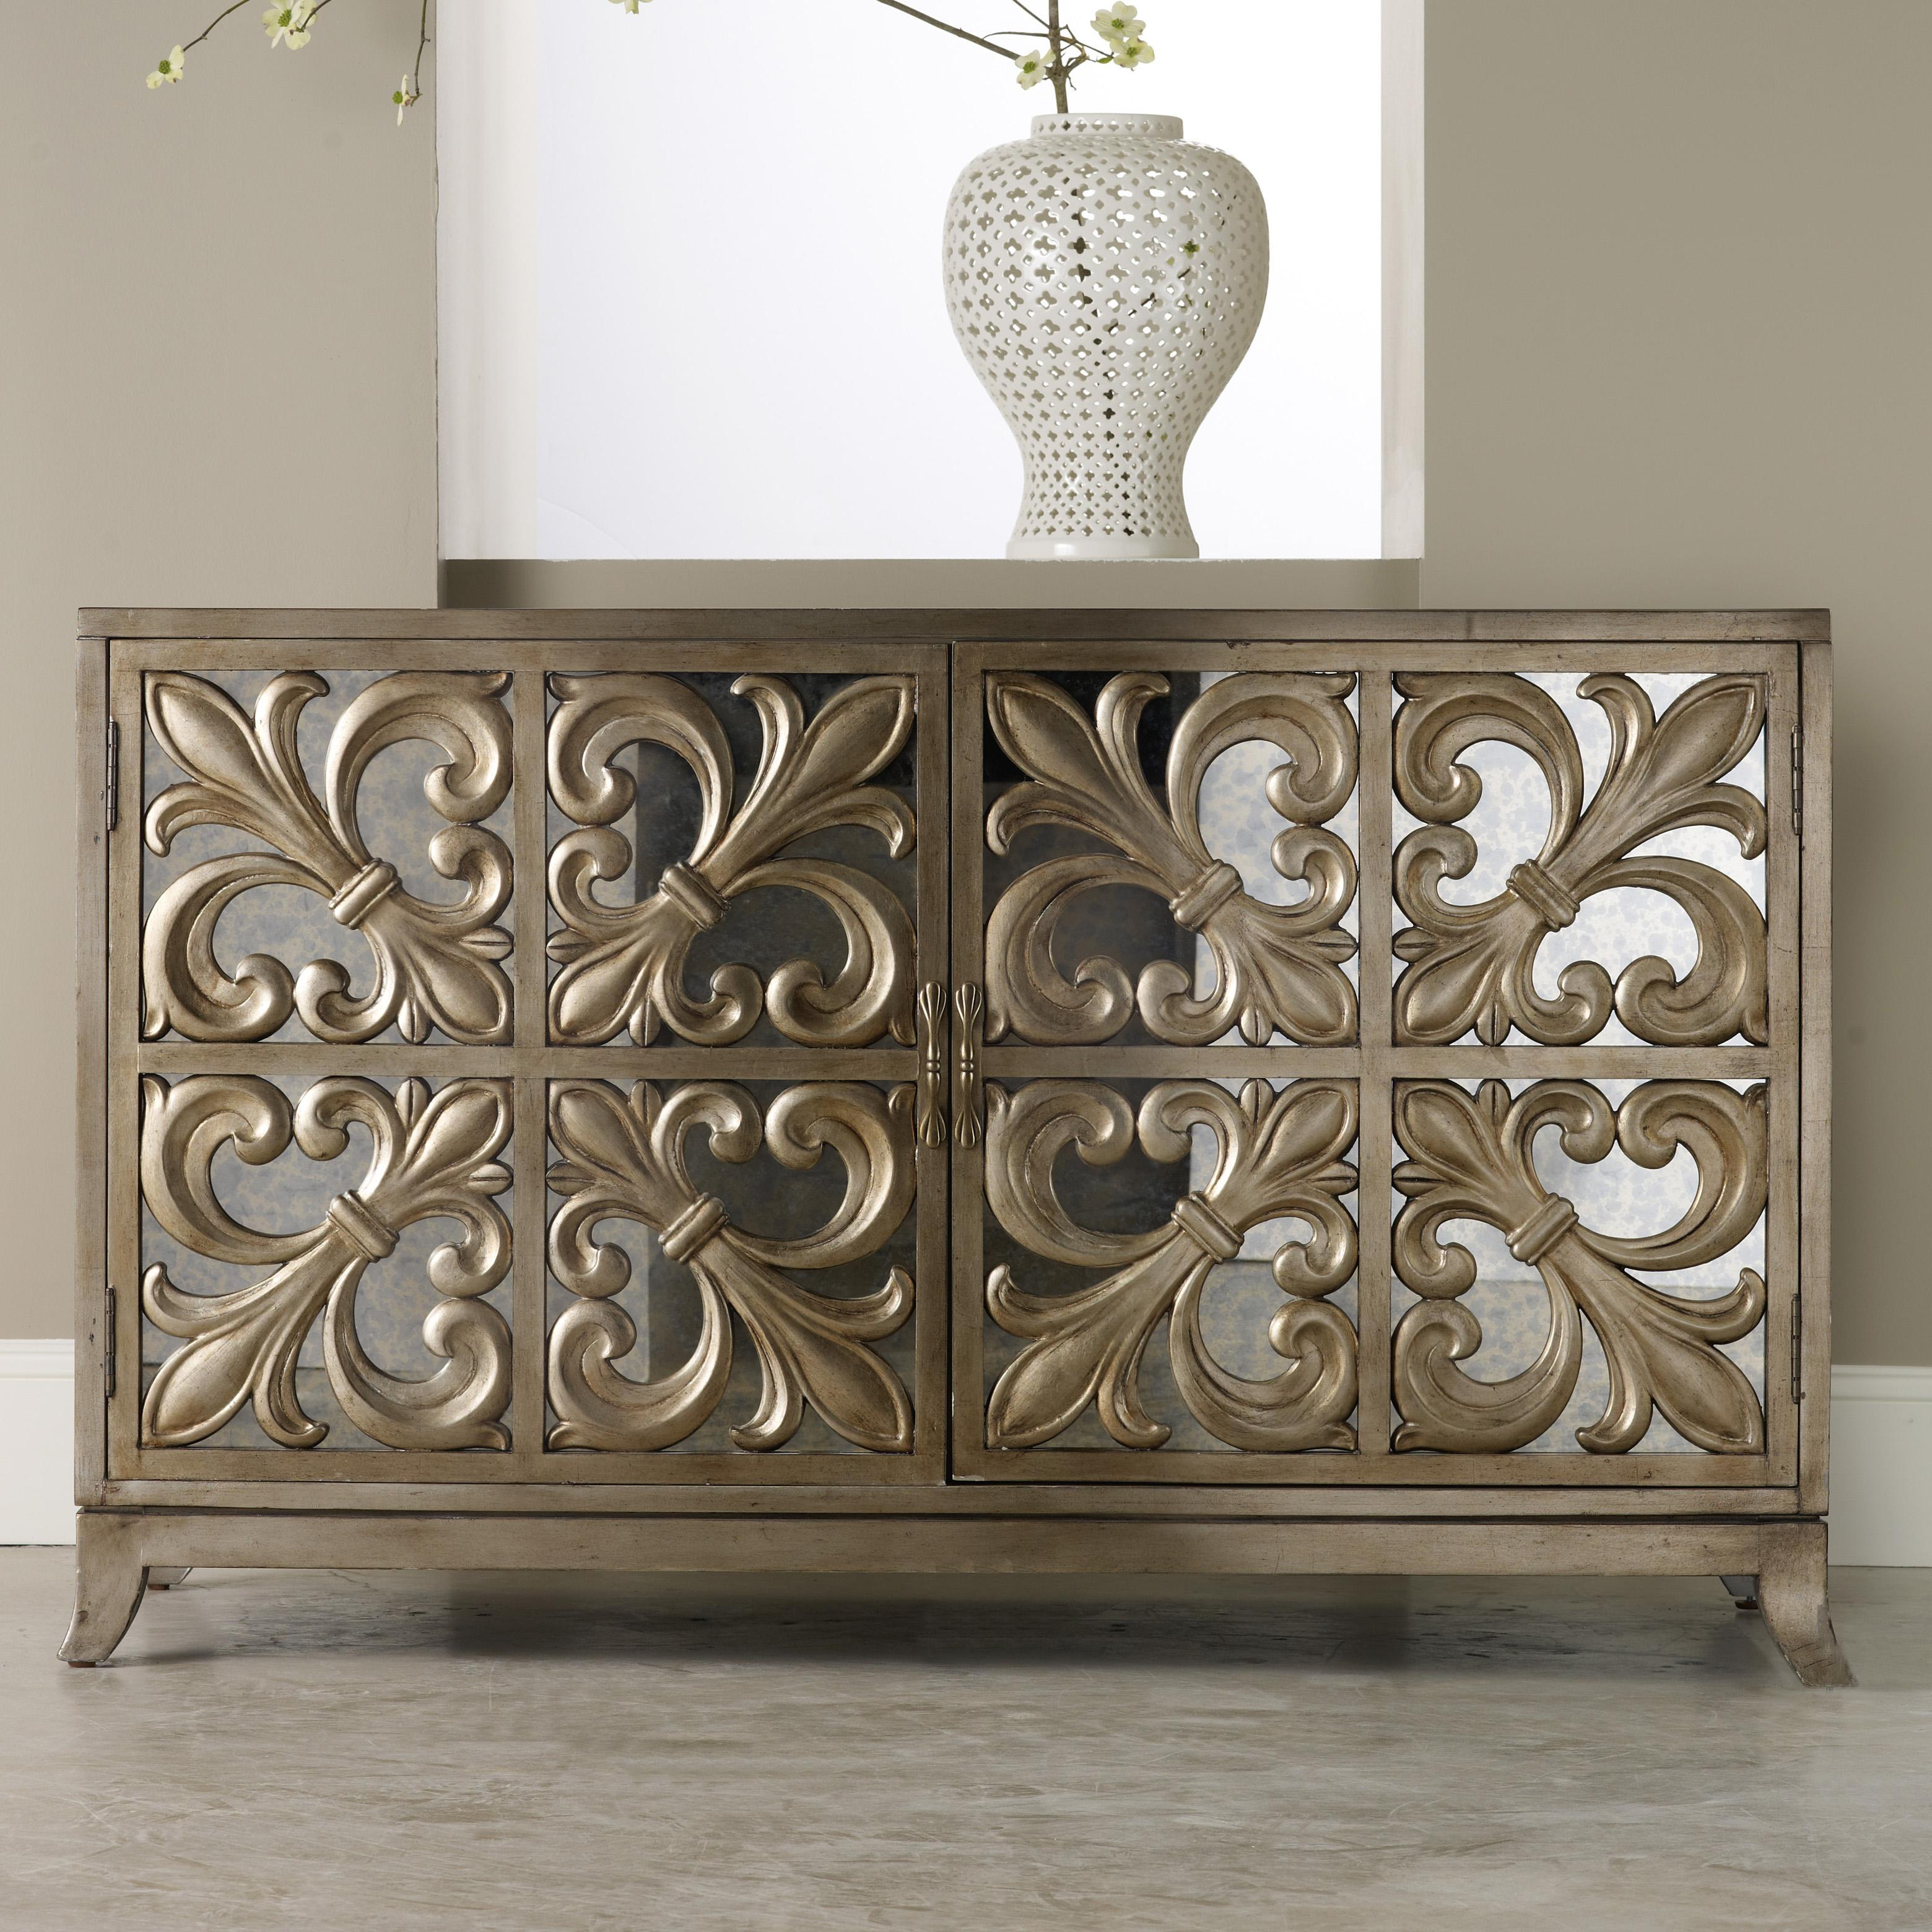 Hooker Furniture Mélange Fleur-de-lis Mirrored Credenza - Item Number: 638-85057